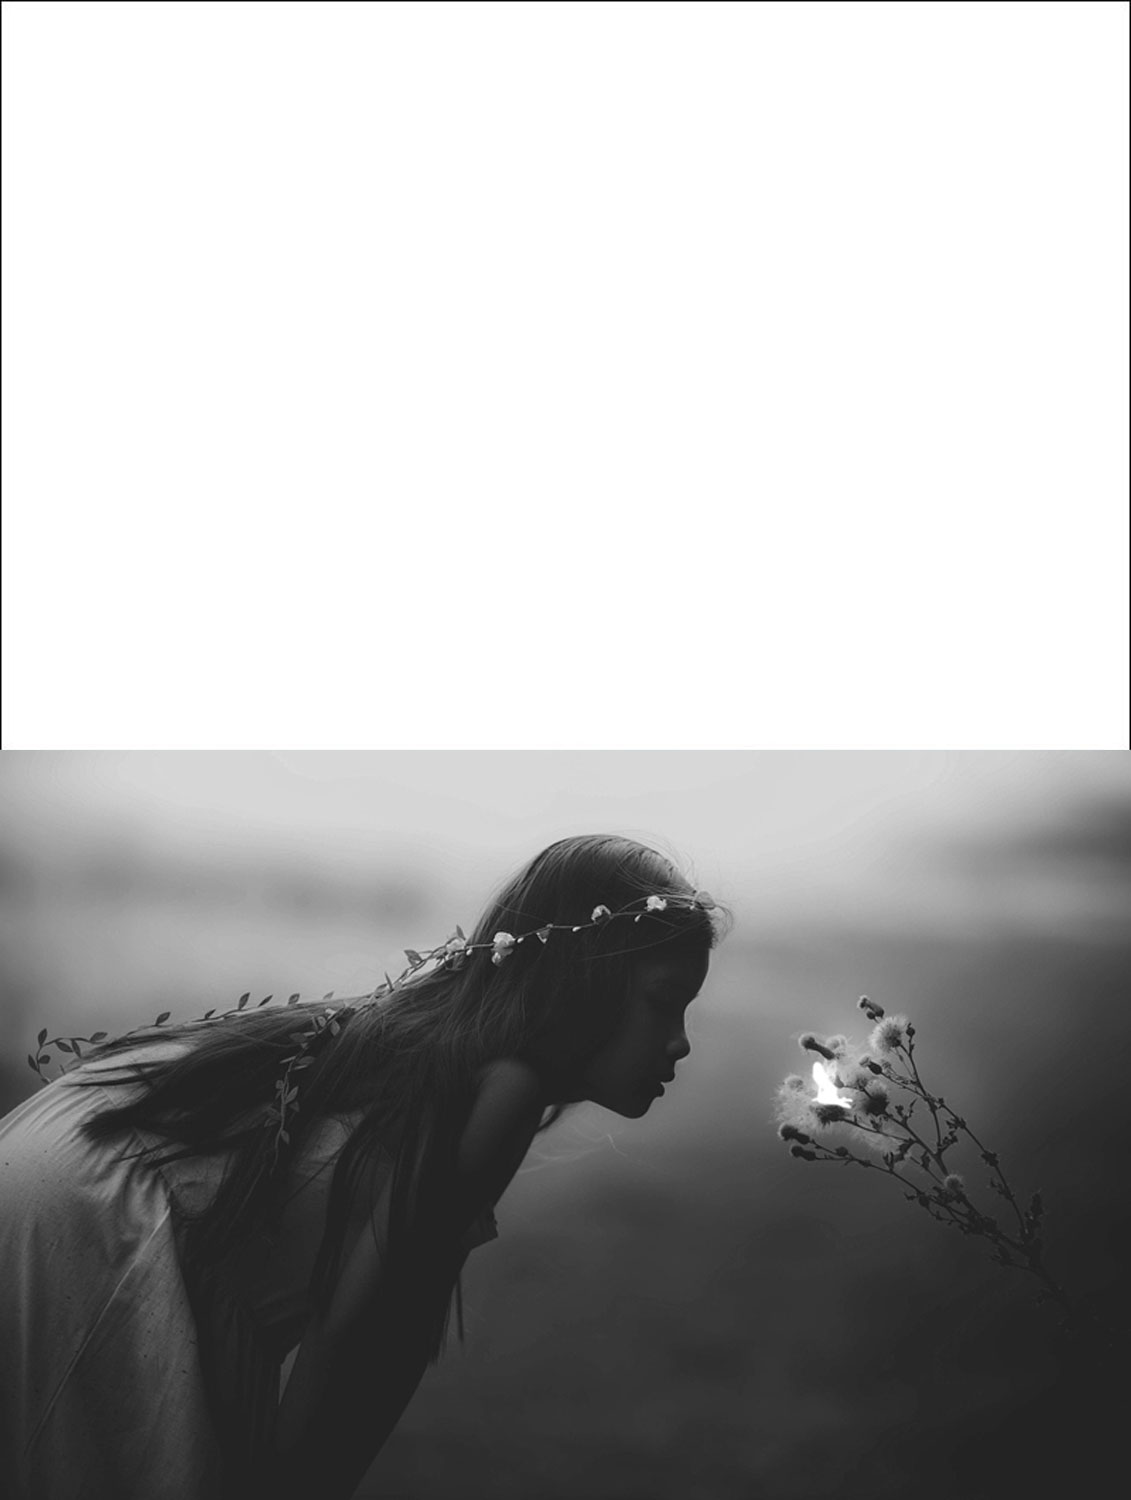 Printable greetings card picturing a lirrle girl finding a fairy in a field. Particularly popular during the summer months.